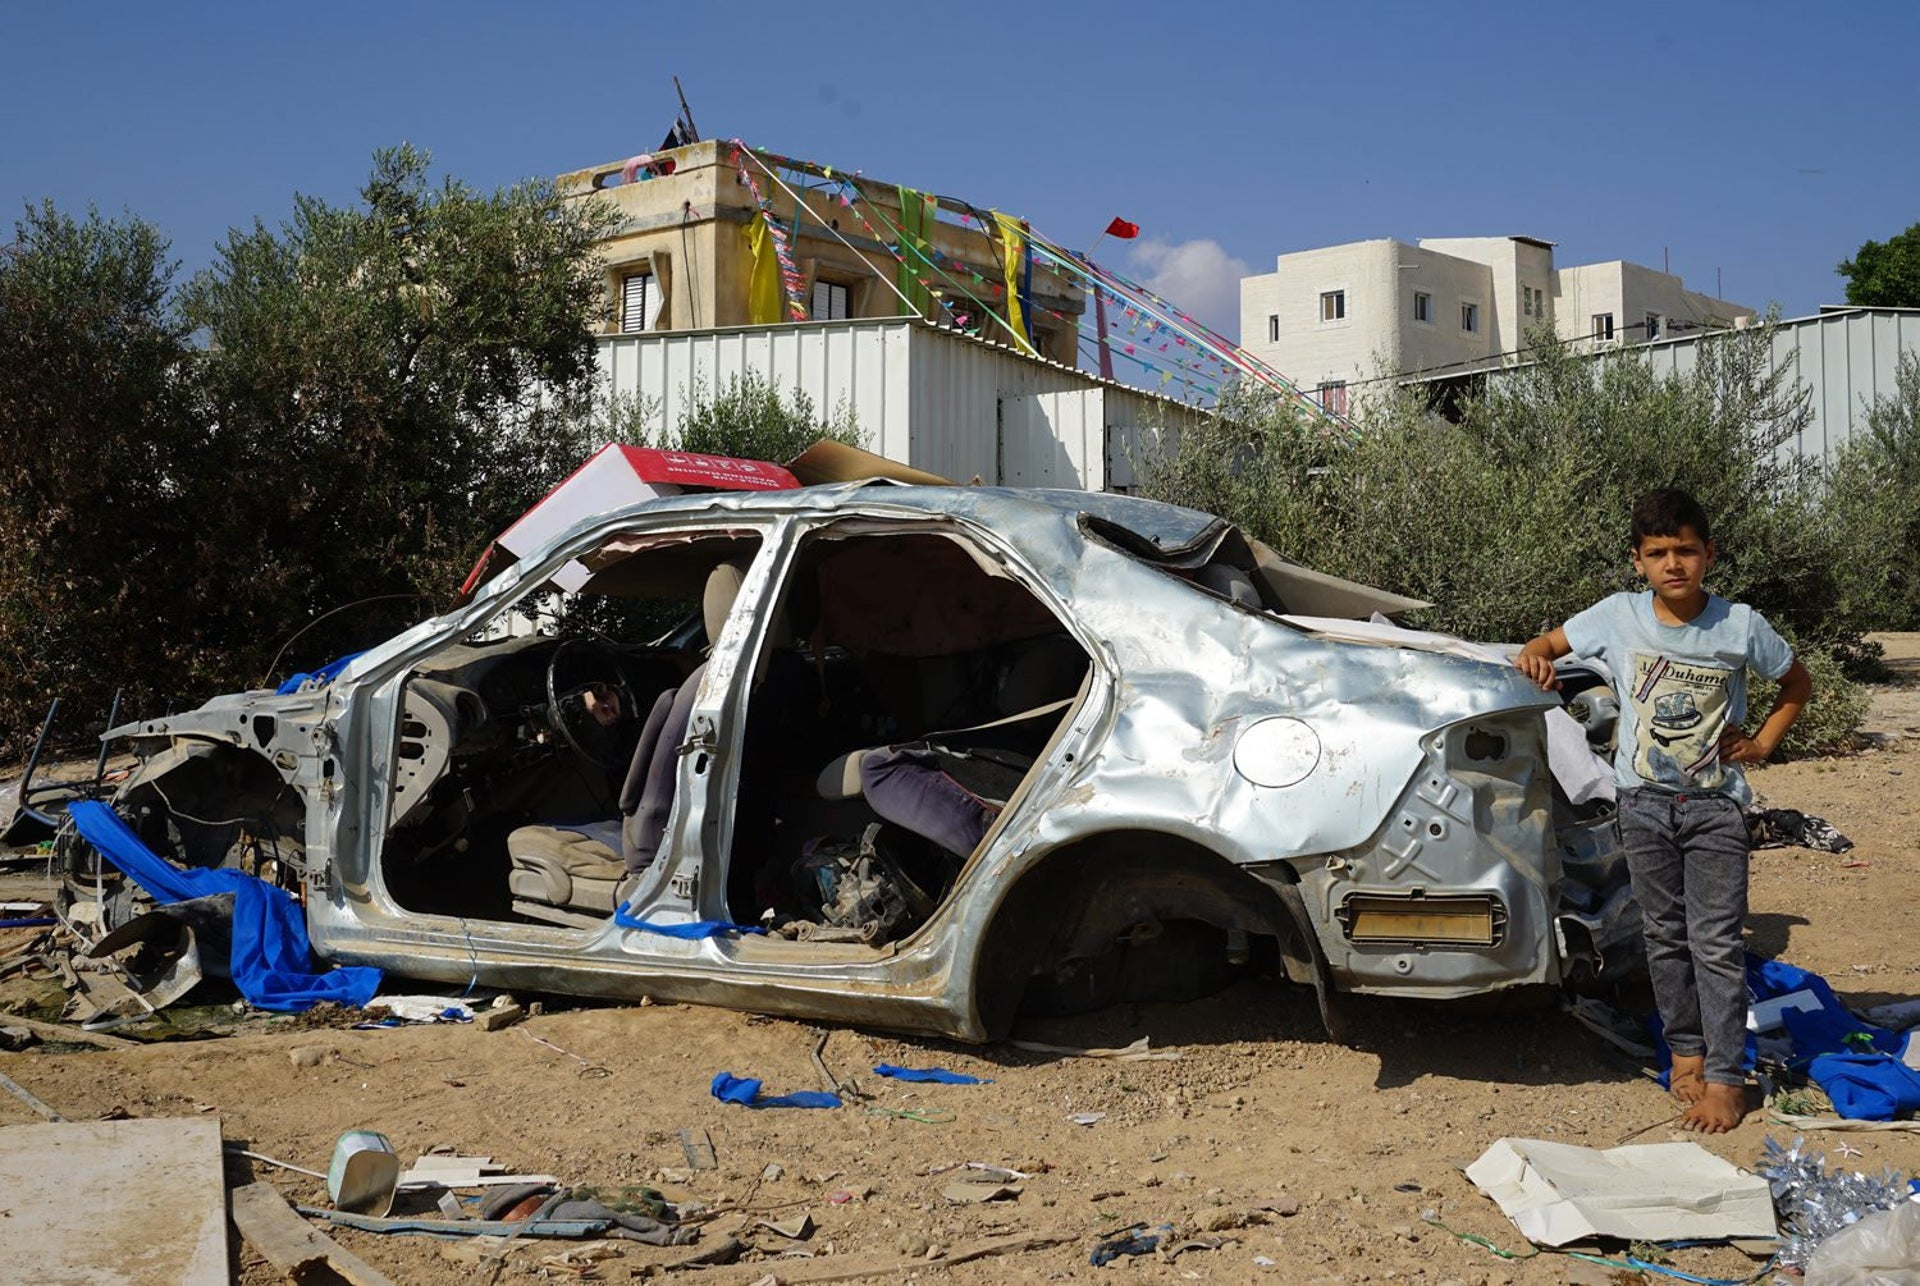 The Bedouin city of Rahat, a graveyard for rusting cars off Highway 40